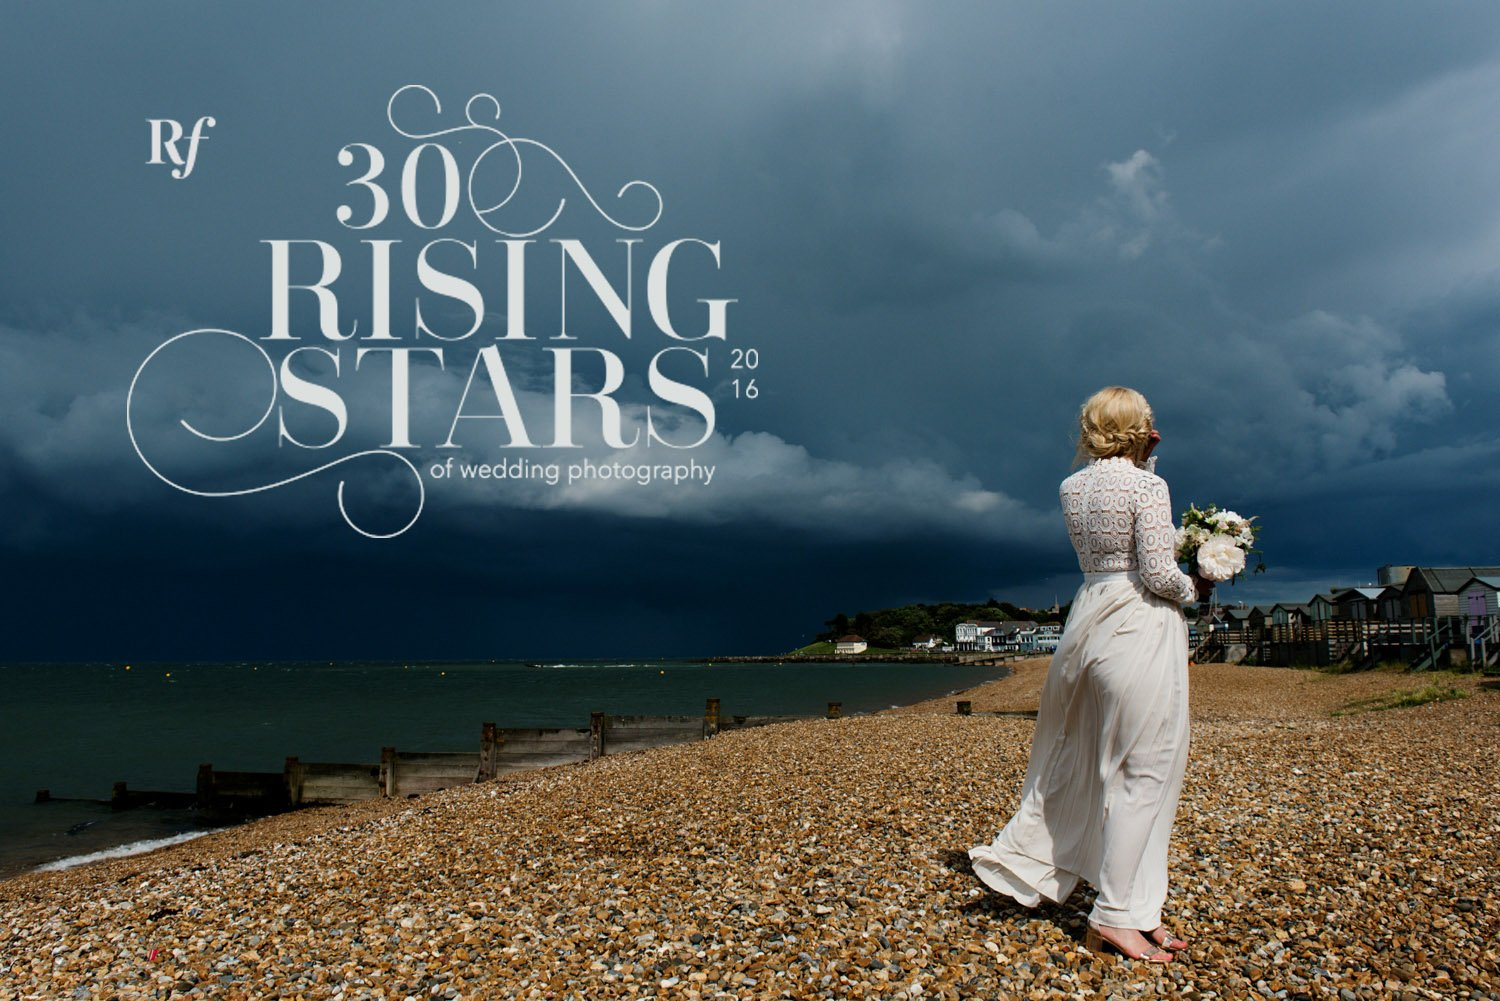 Creative award winning wedding photography London